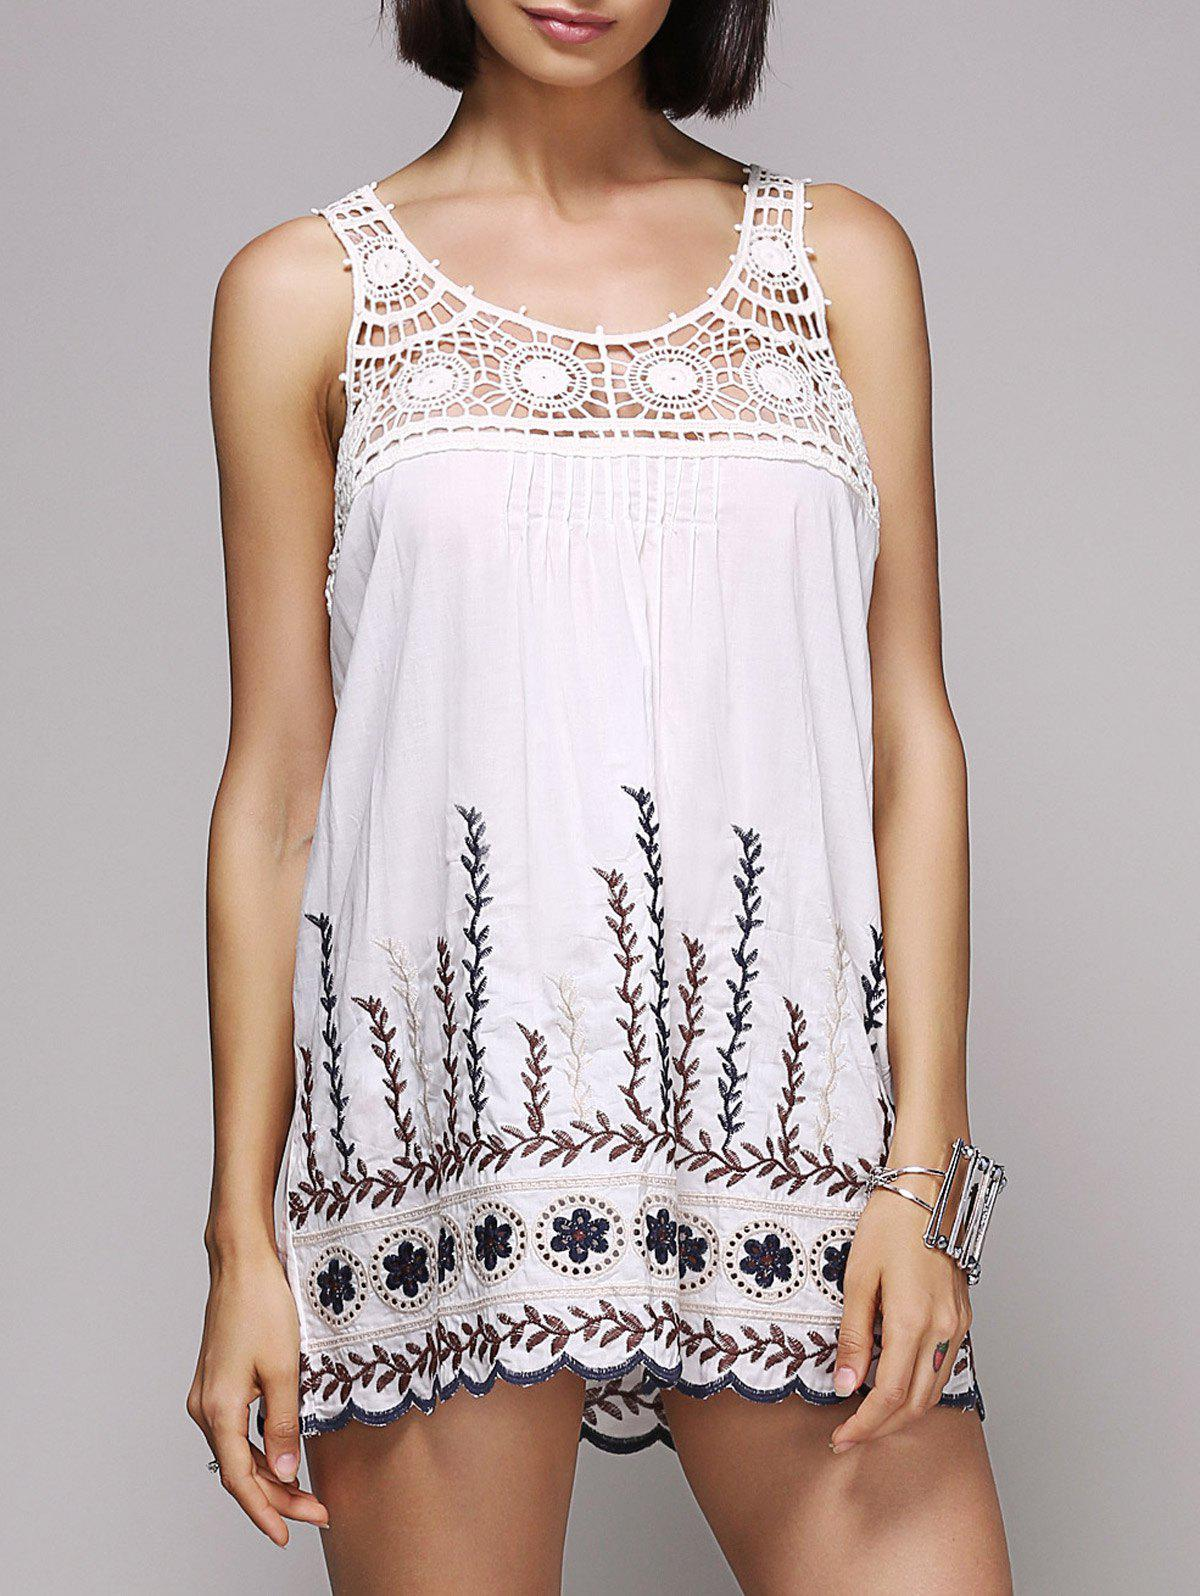 Stylish Women's Scoop Neck Embroidered Hollow Out Tank Top - WHITE ONE SIZE(FIT SIZE XS TO M)